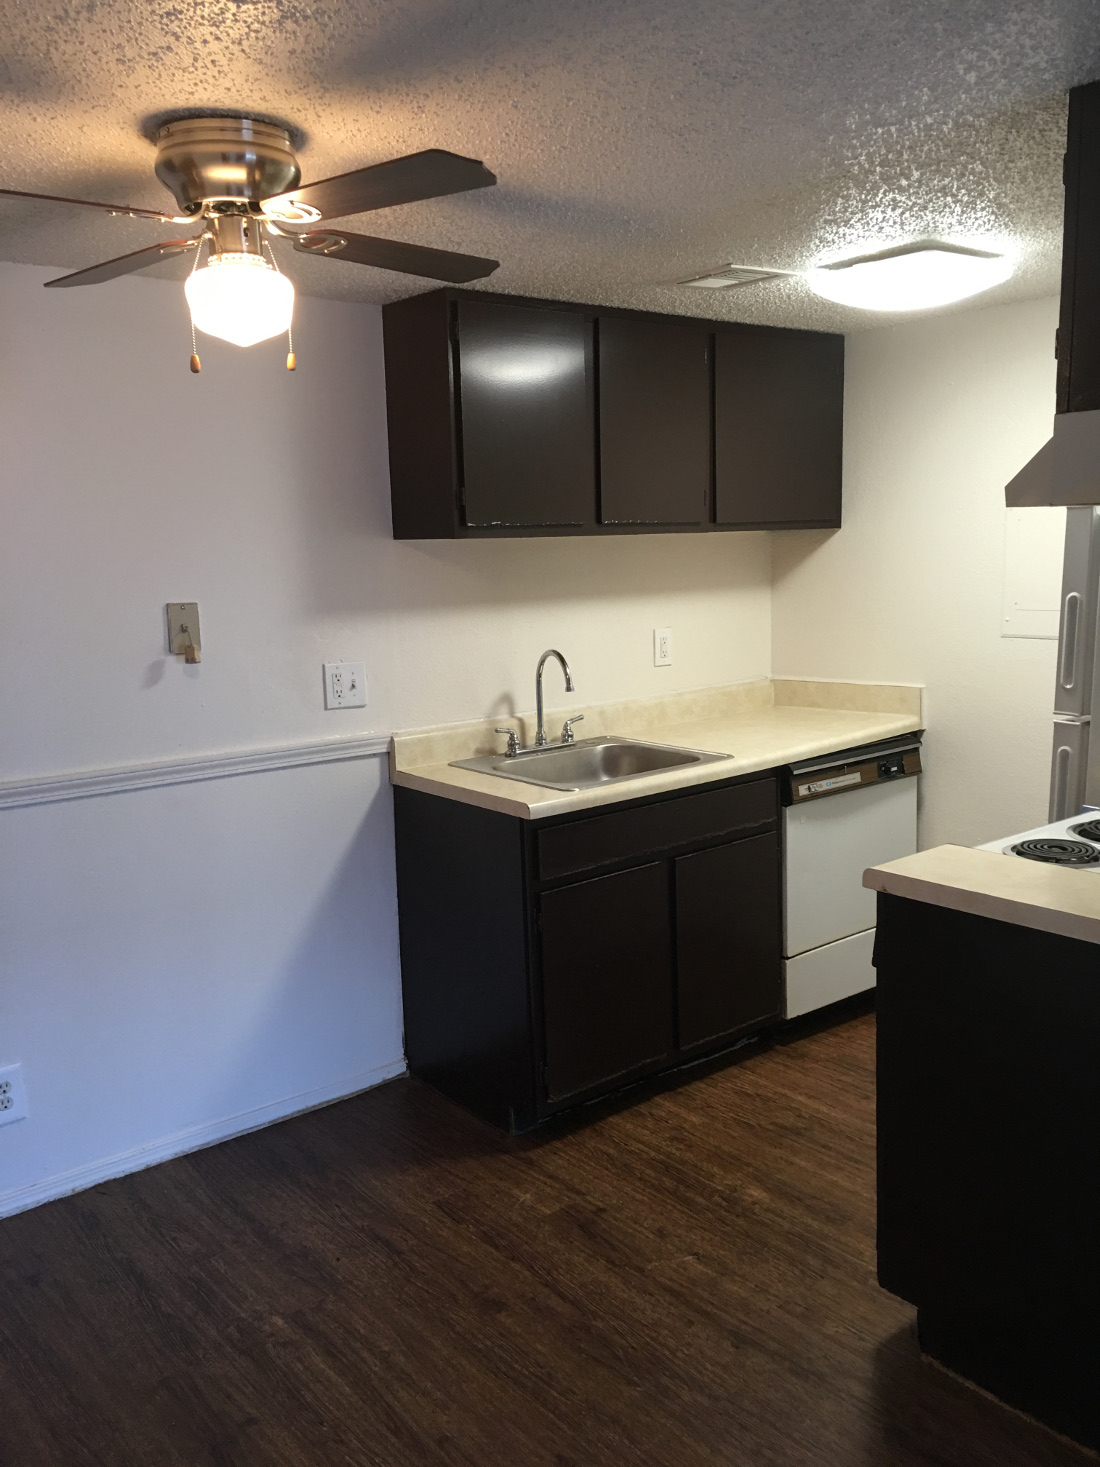 Kitchen at Union Point Apartments in Tulsa, OK